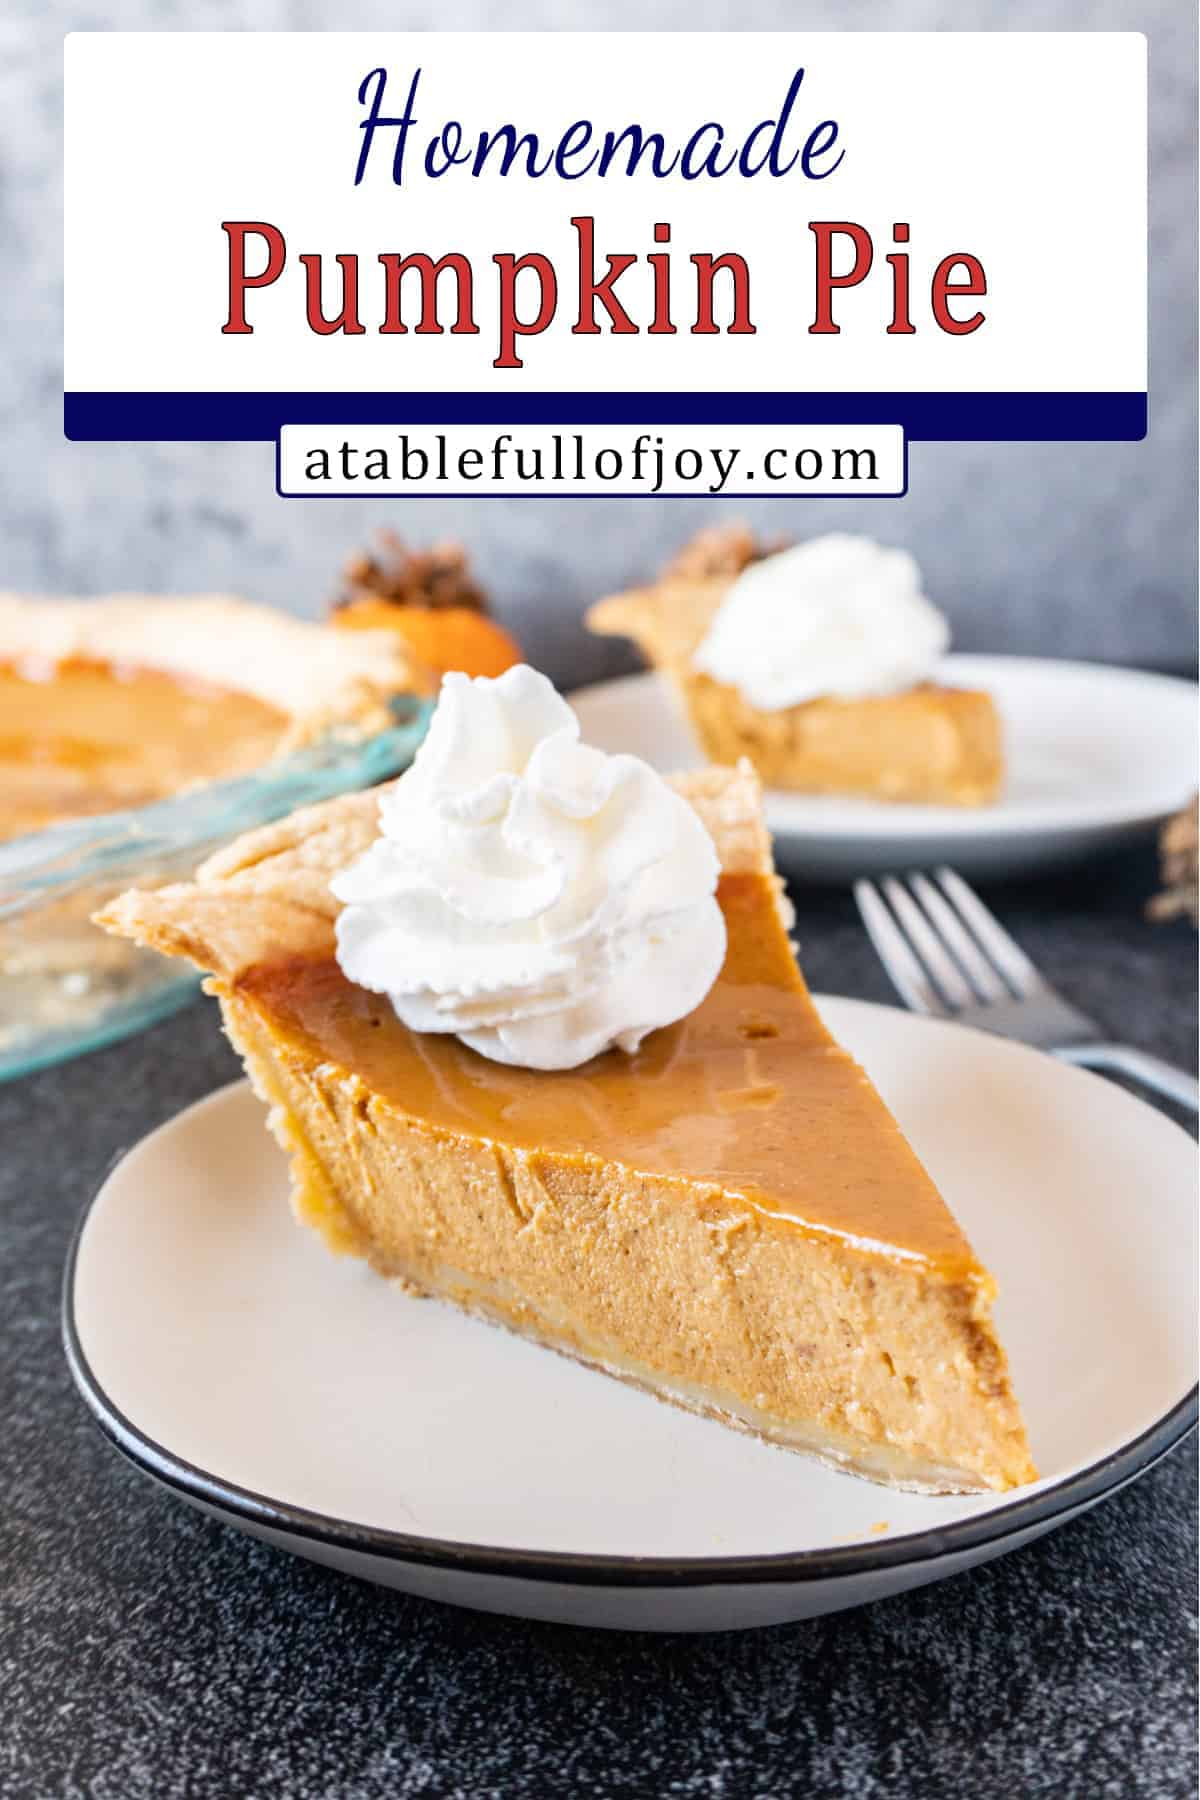 Pumpkin Pie pinterest image